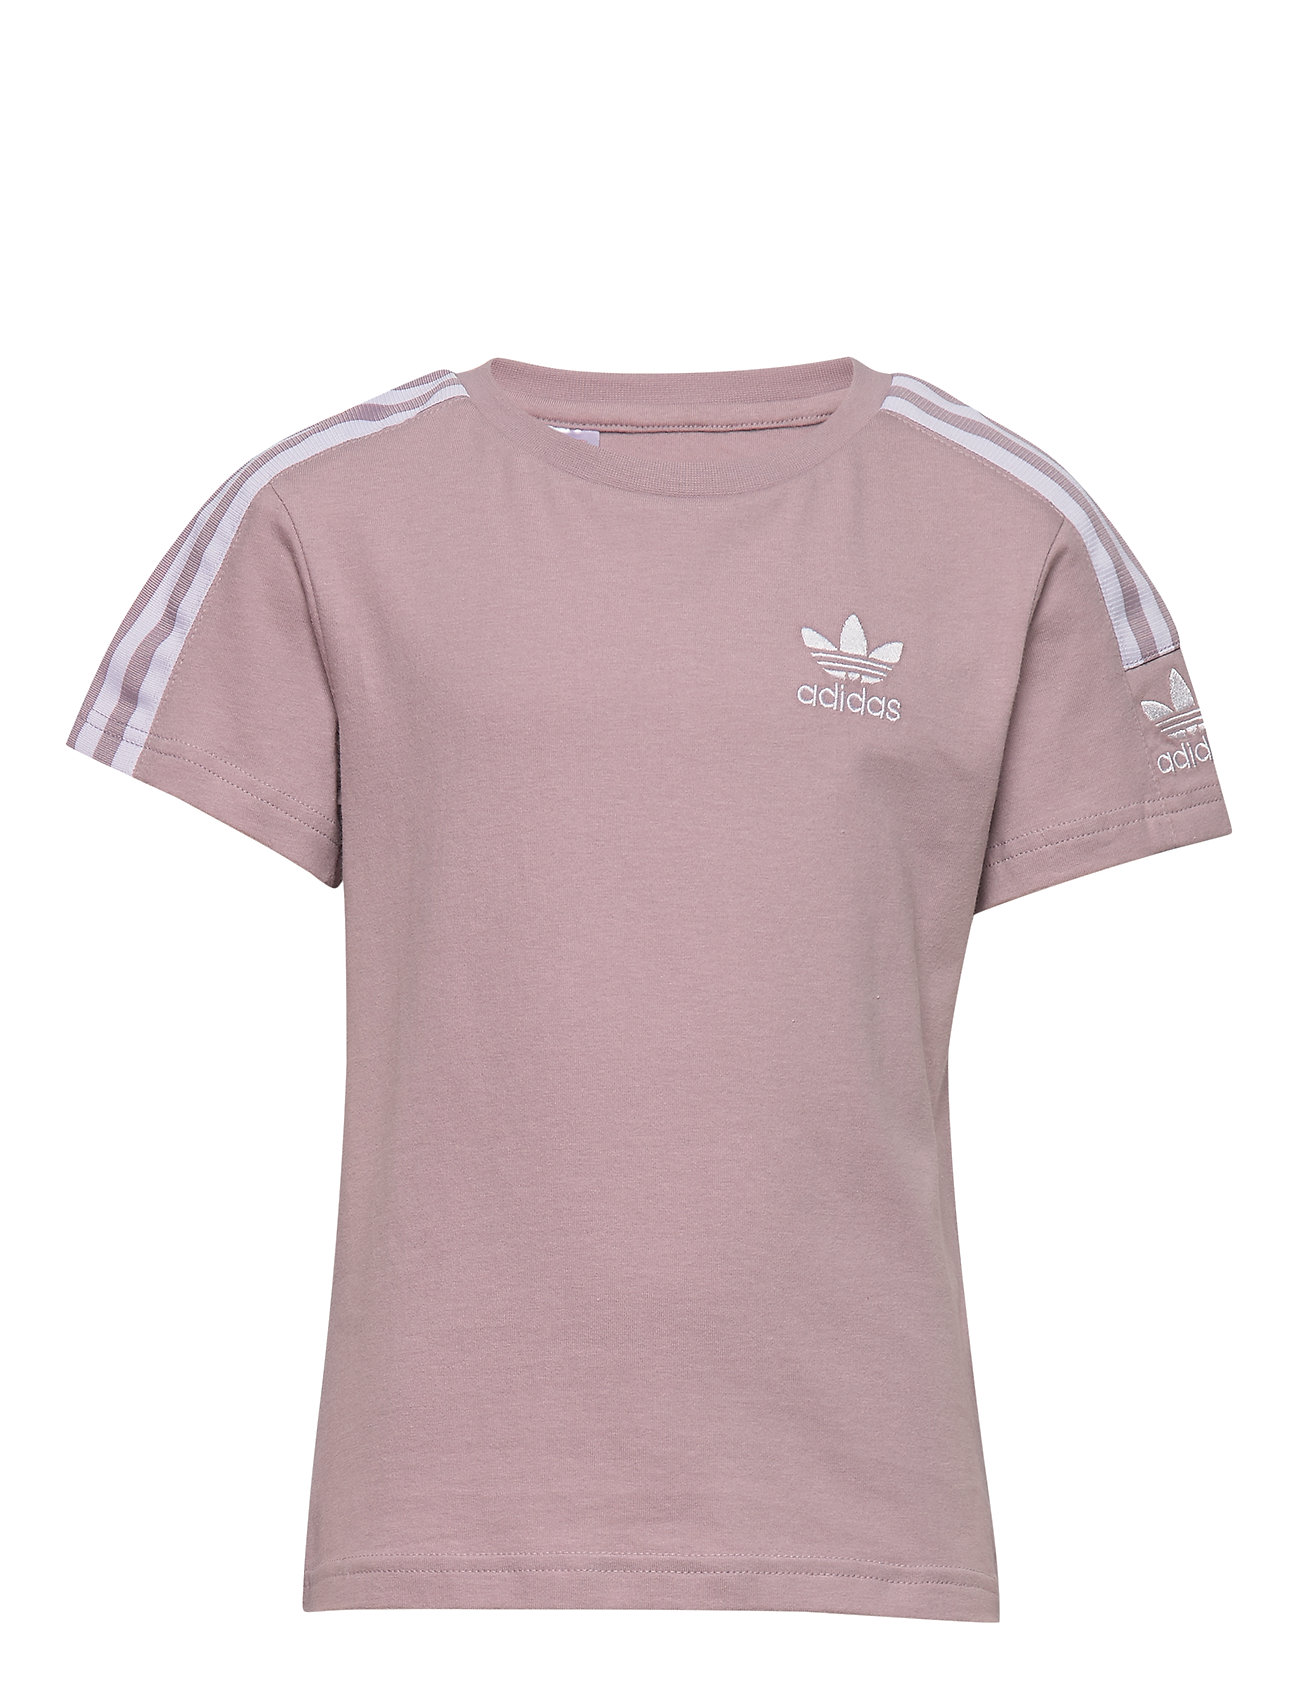 adidas Originals NEW ICON TEE - SOFVIS/WHITE